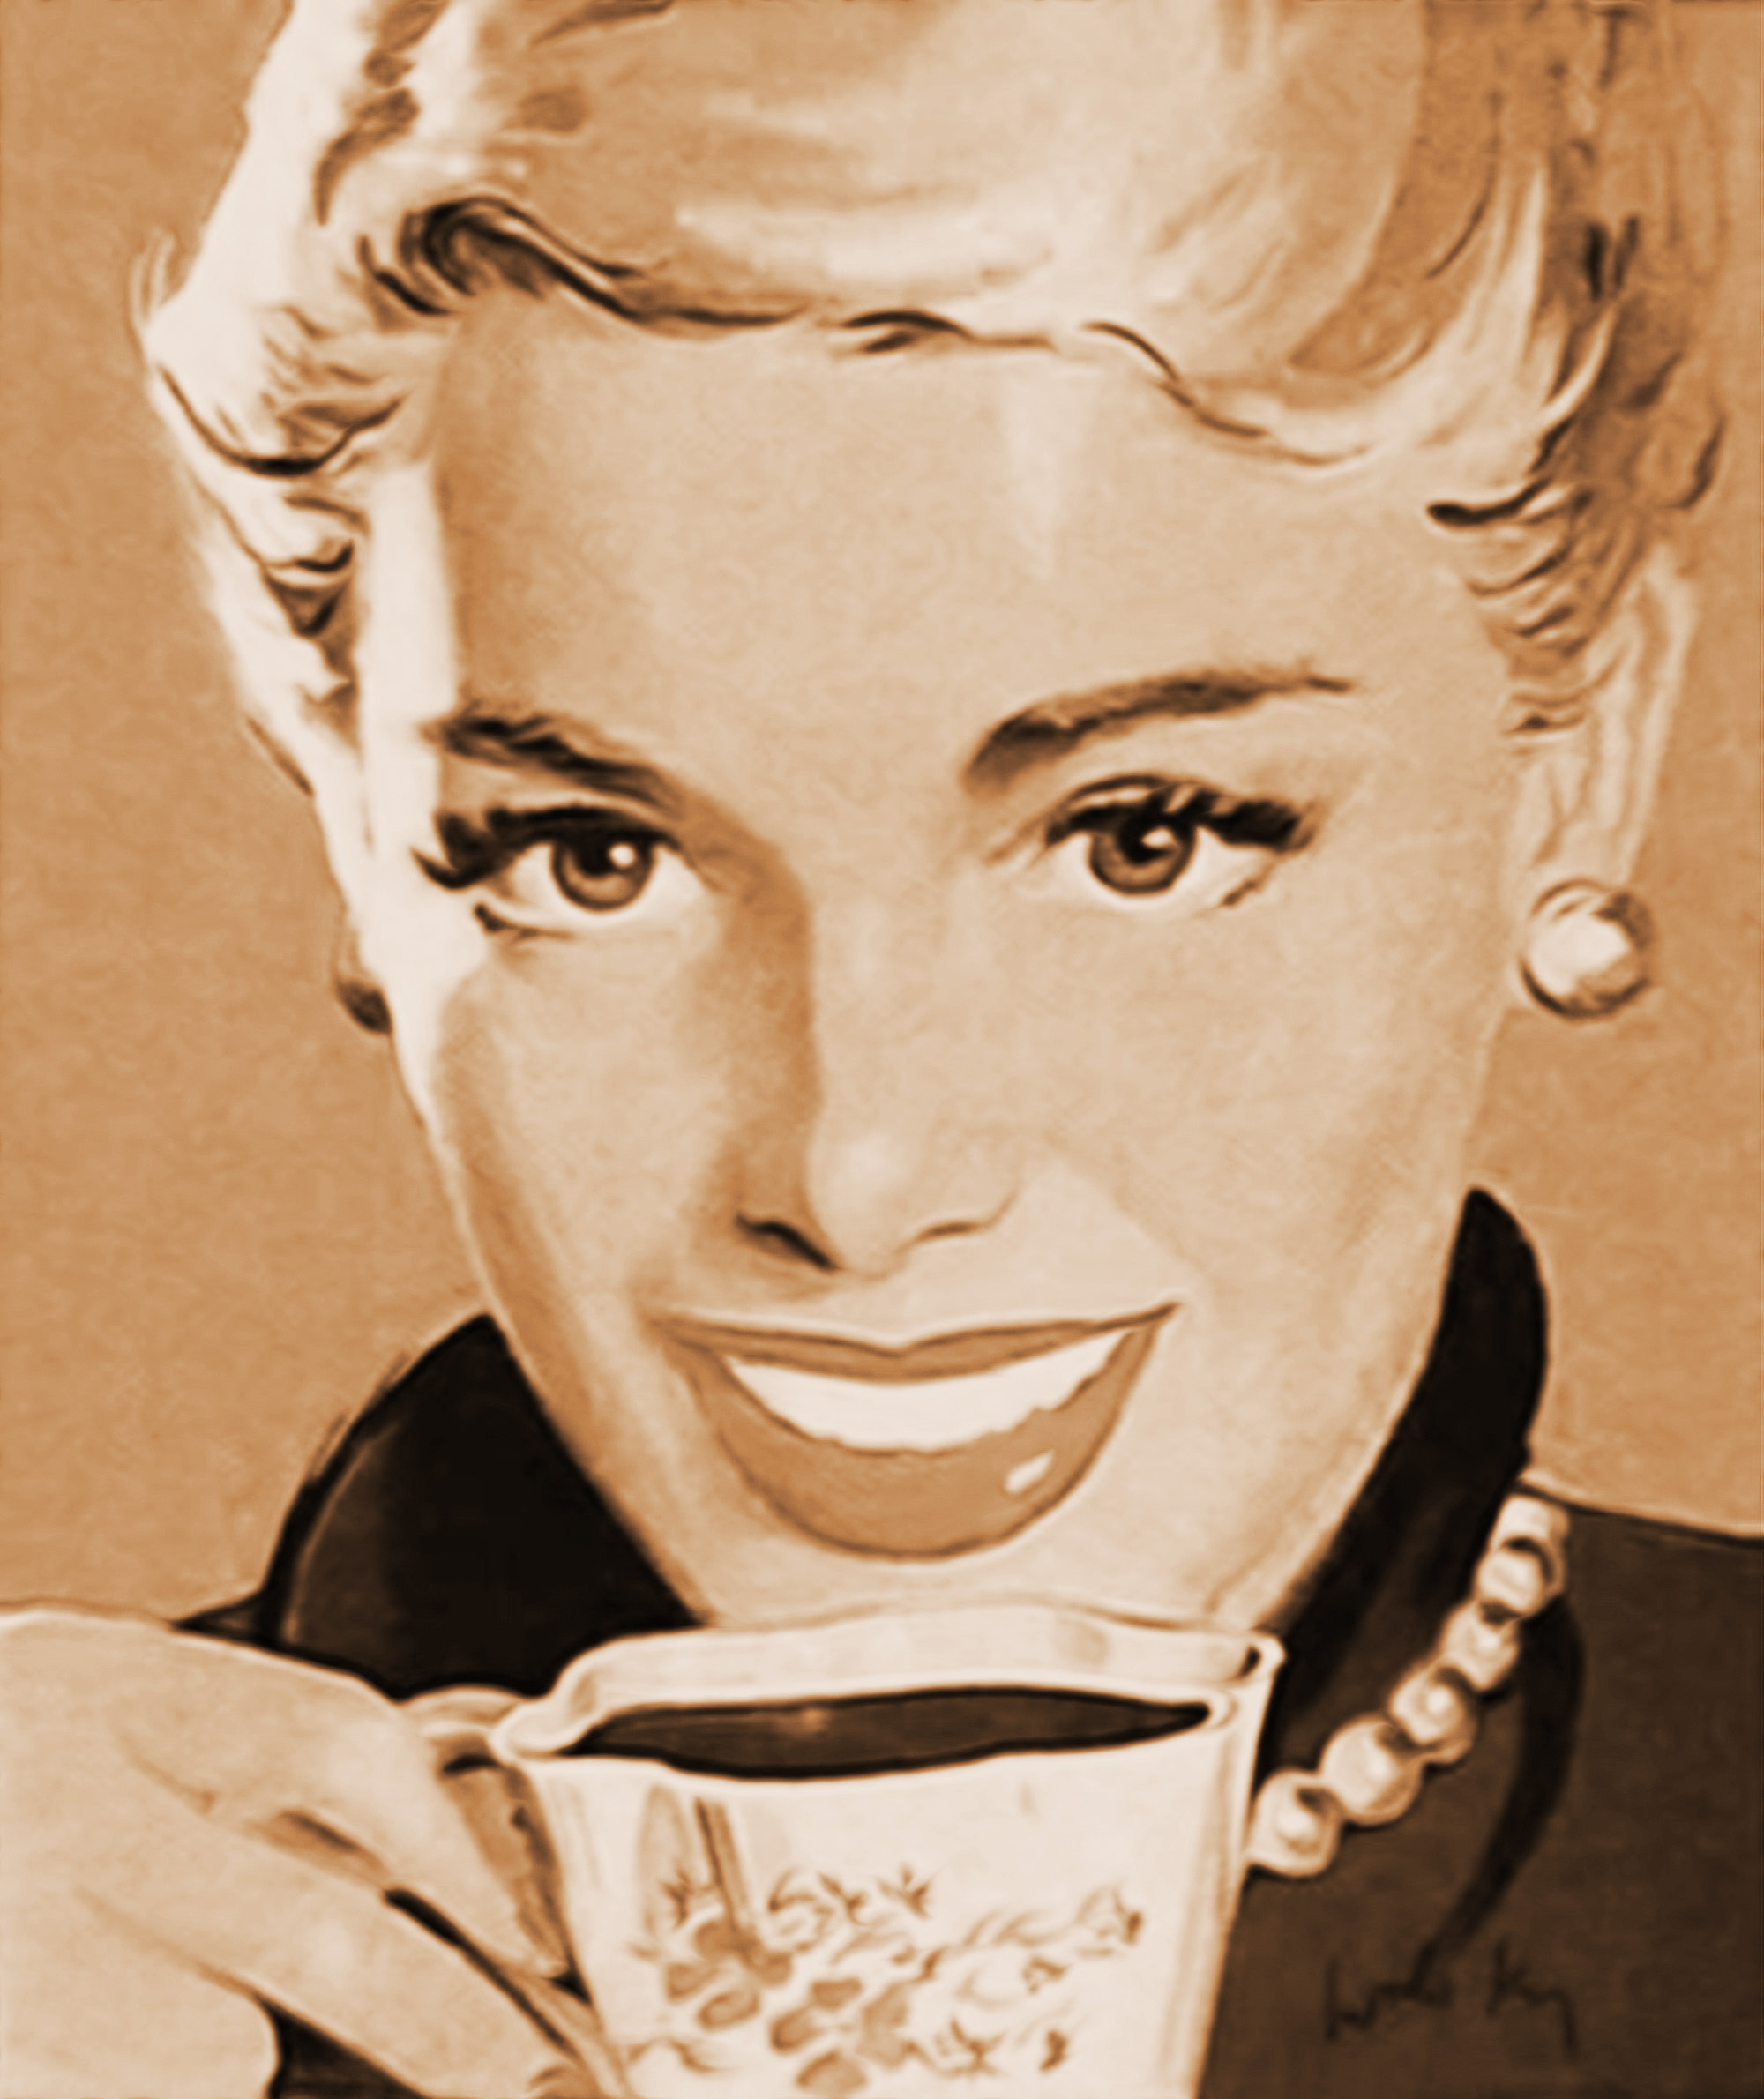 vintage 1960's illustration of a smiling, blonde woman drinking coffee